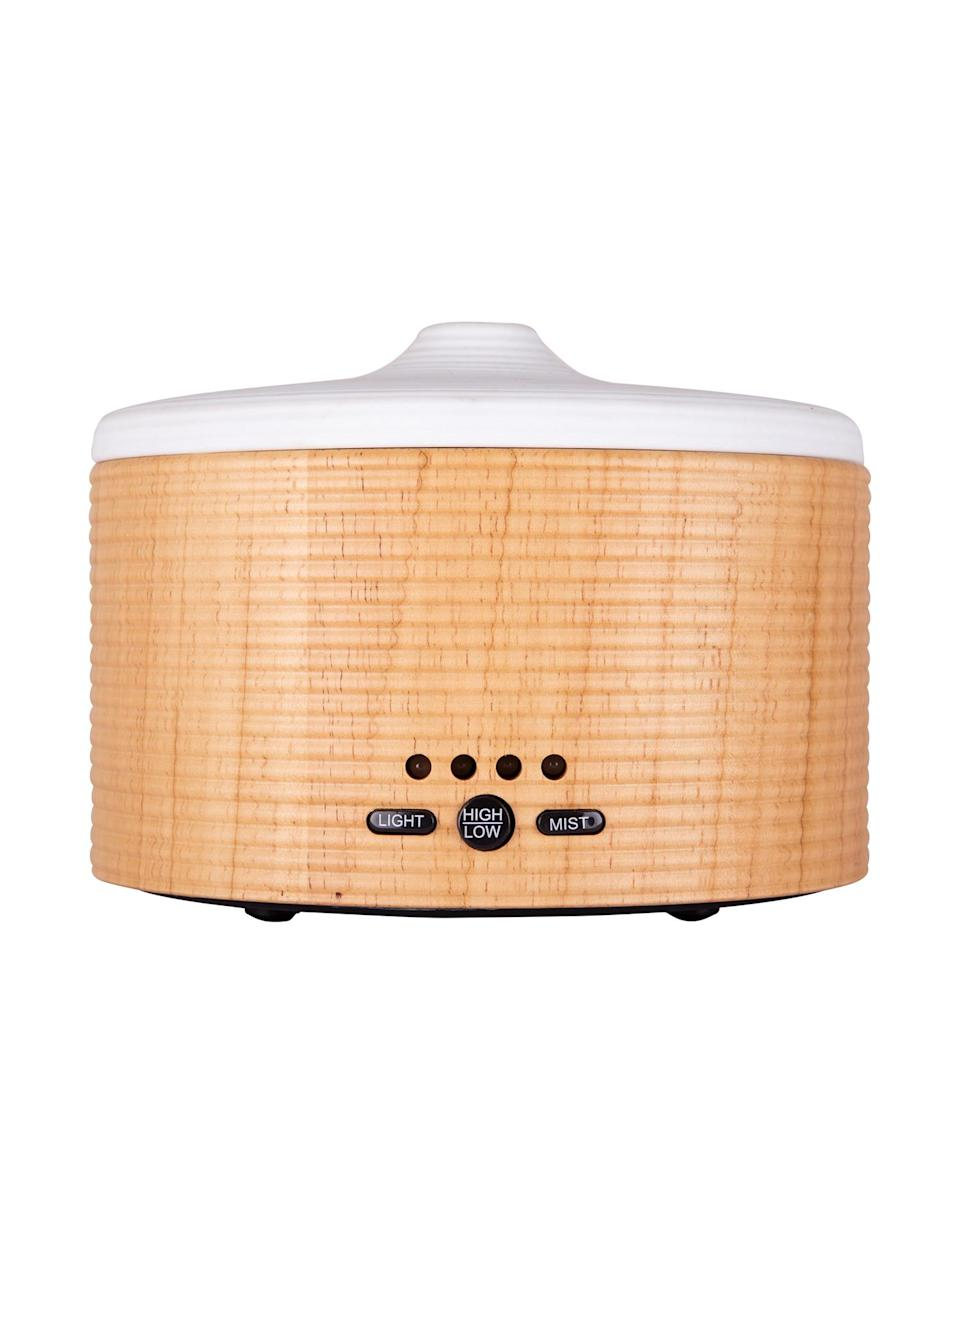 """<p>Made from sustainable wood, the Maya diffuser lasts for up to six hours and will make a stylish addition to the bedroom. The must-have features soothing mood lighting and is recommended for us during pre-bedtime meditation and aromatherapy treatments. <a href=""""https://www.nealsyardremedies.com/aromatherapy/aromatherapy-oils-and-blends/essential-oil-burners/9419.html?gclid=CjwKCAjwmq3kBRB_EiwAJkNDp0QGEPIM6VnUgHcfMpiLEkJolR7CwjbXSeKw2eihhiwJHRiTxB2UhRoCKI0QAvD_BwE#fo_c=1916&fo_k=219fdc99f84df23026bda660ddc0b220&fo_s=gplauk"""" rel=""""nofollow noopener"""" target=""""_blank"""" data-ylk=""""slk:Buy now"""" class=""""link rapid-noclick-resp""""><em>Buy now</em></a>. </p>"""